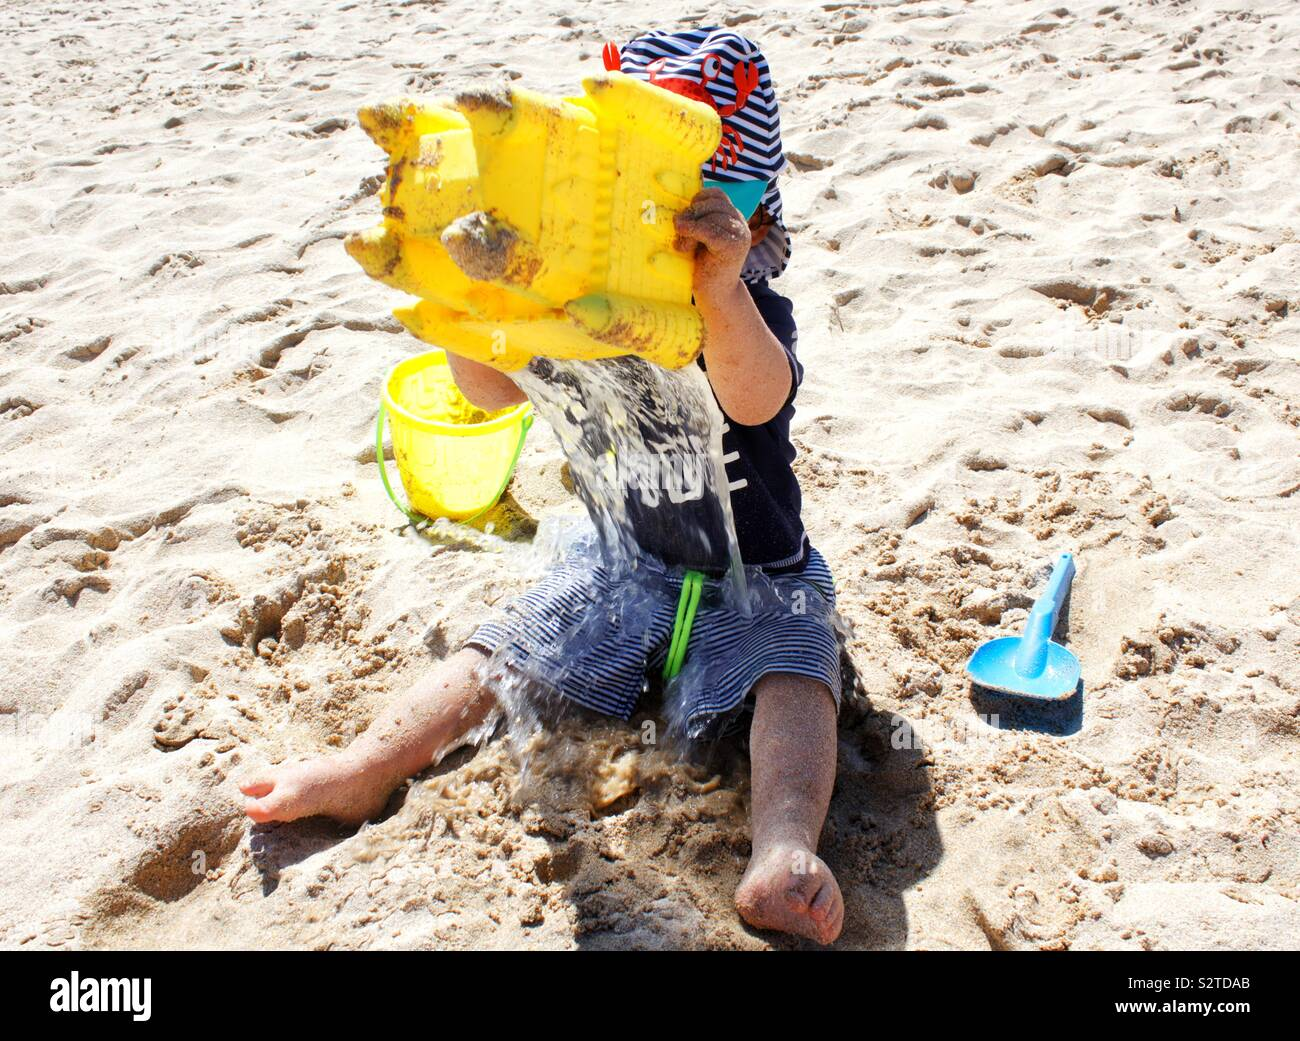 Toddler pouring a bucket of water on himself Stock Photo